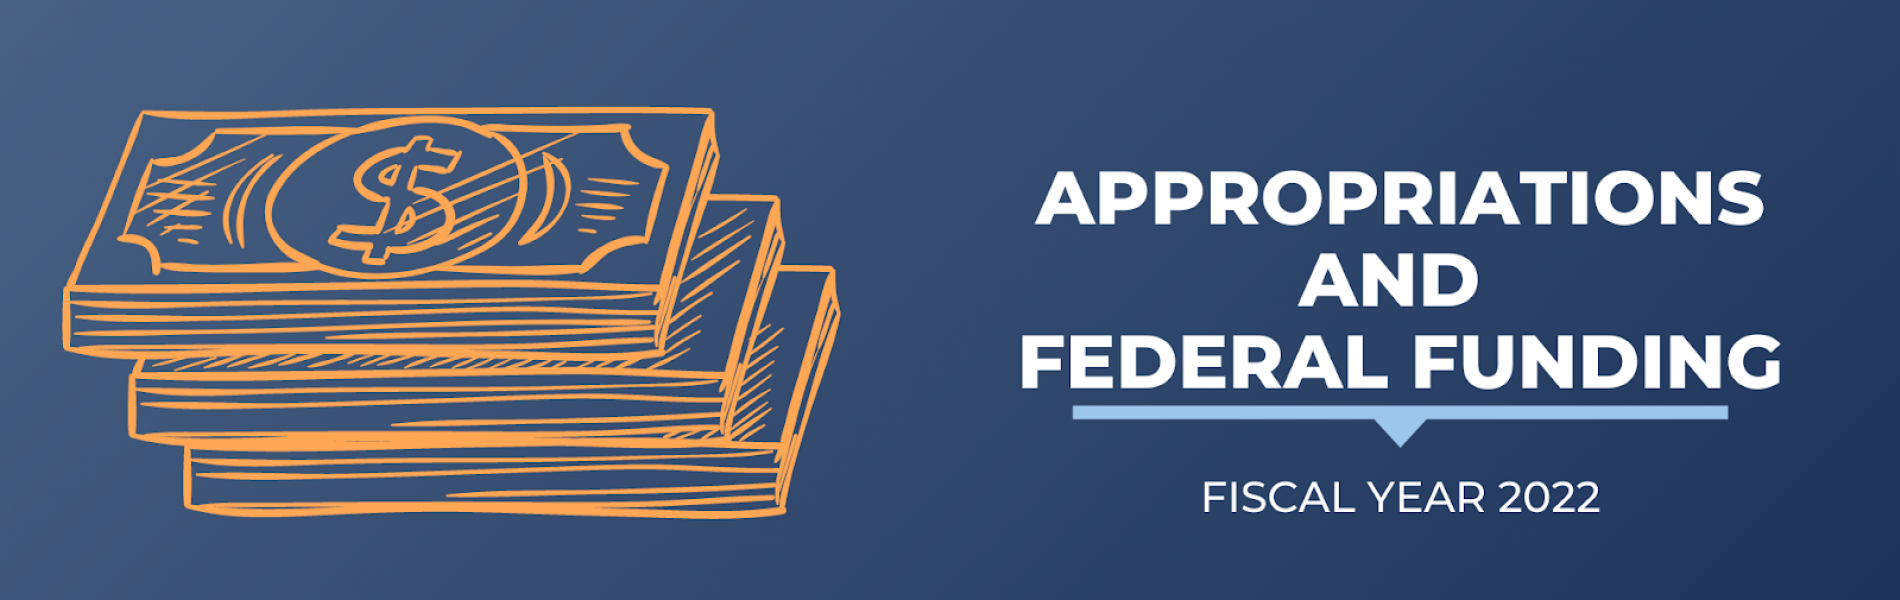 Appropriations and Federal Funding for Fiscal Year 2022